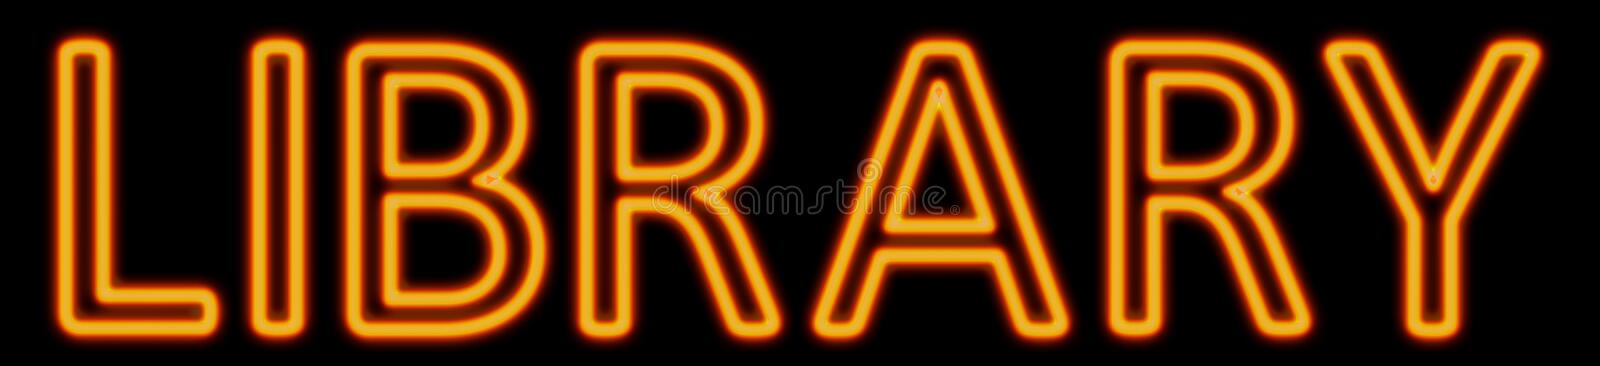 Library neon sign royalty free illustration